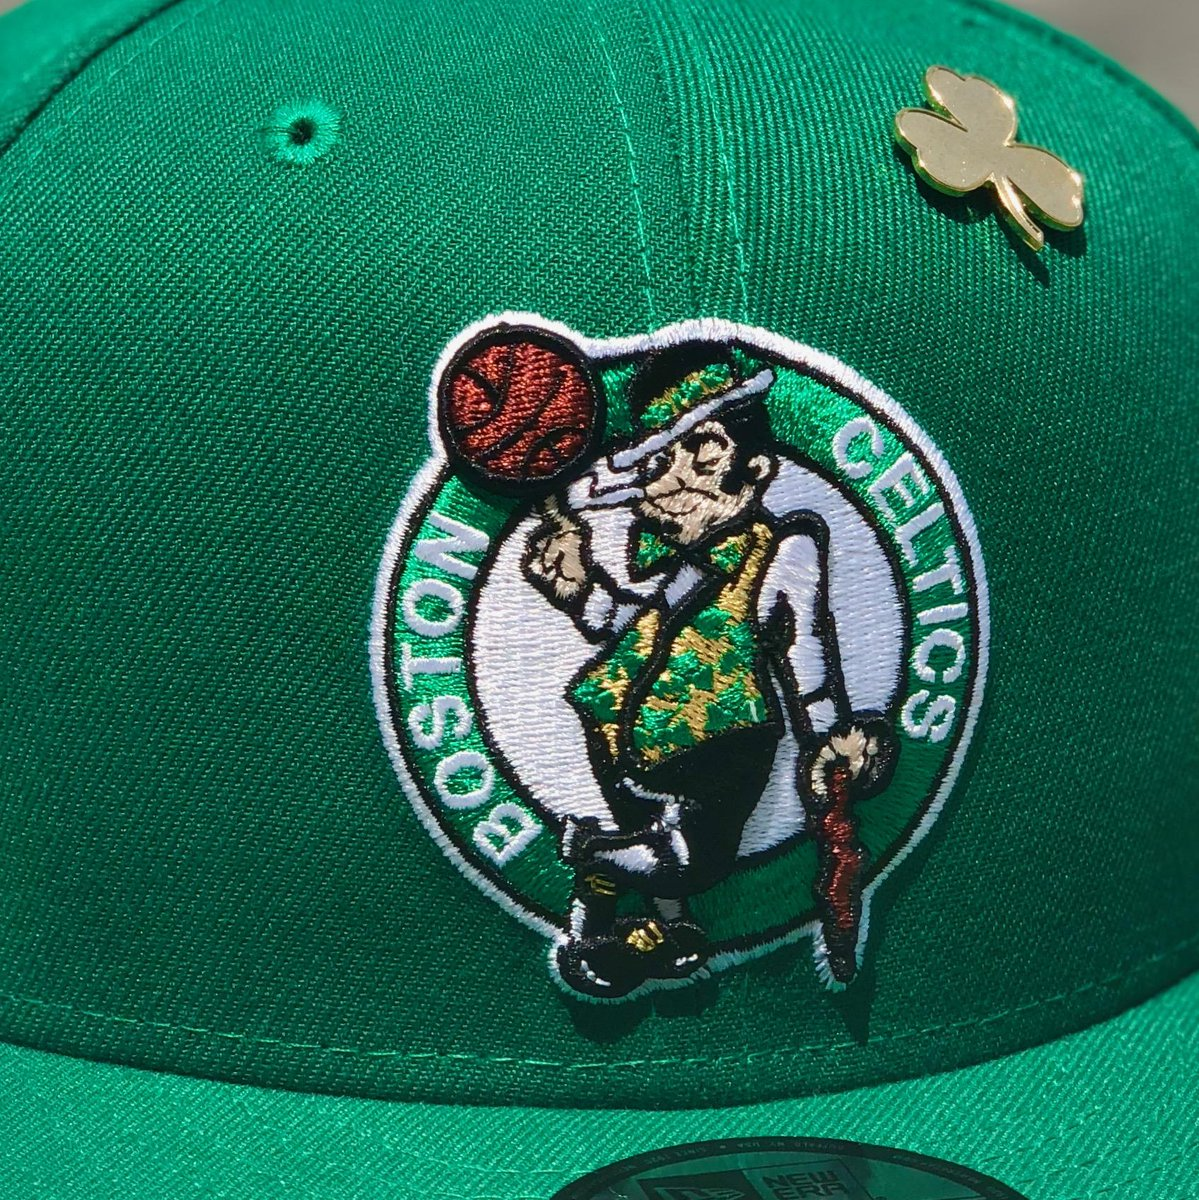 e410a07b990dff Boston Celtics on Twitter: